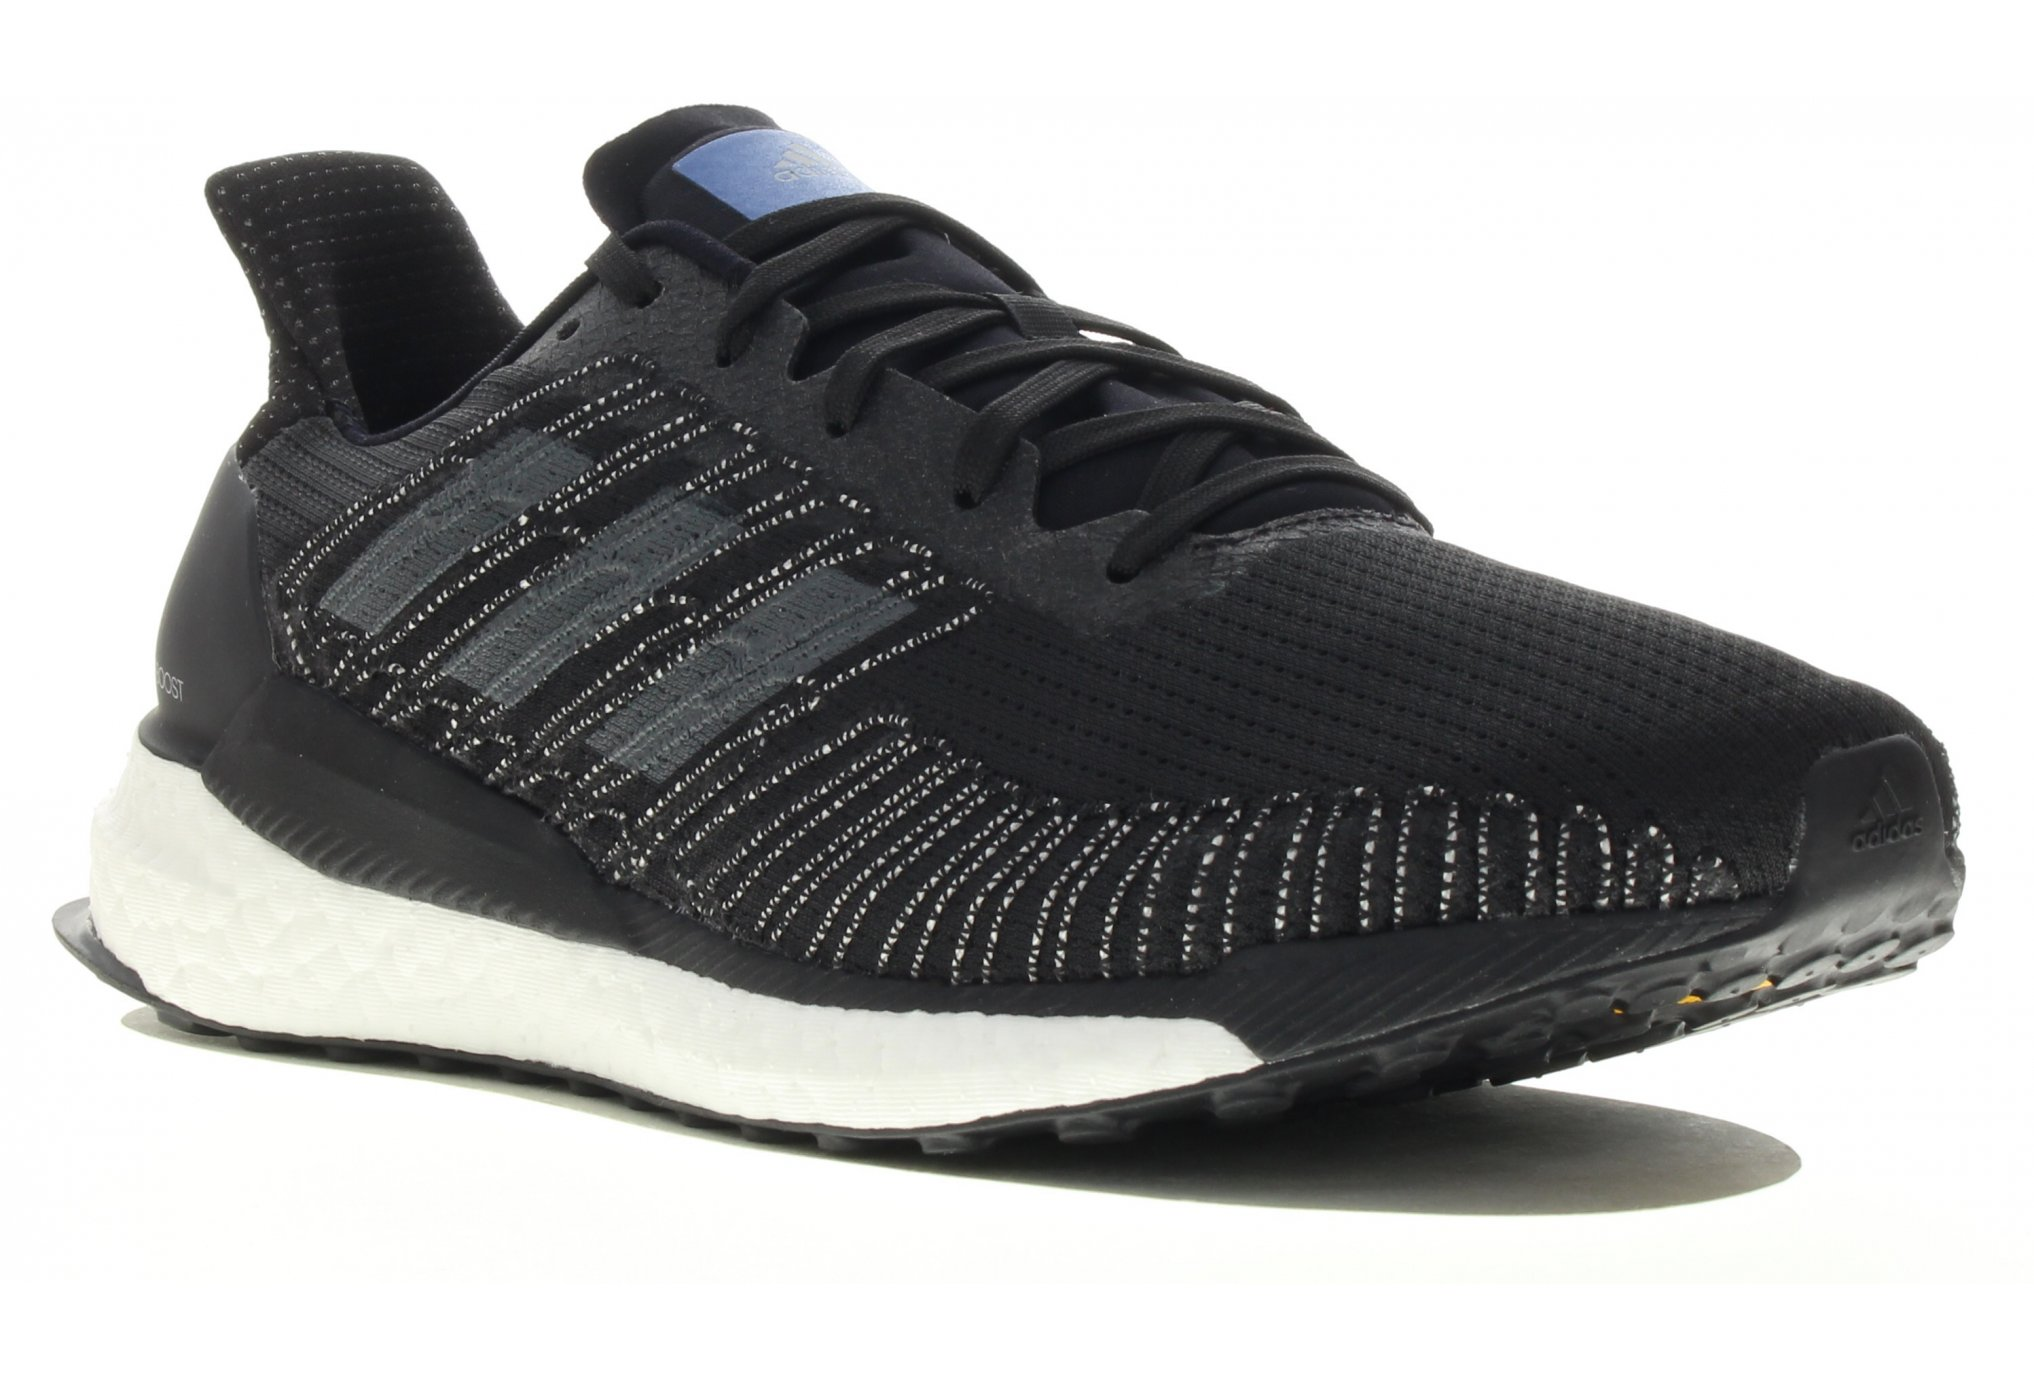 adidas Solar Boost 19 Reflective Chaussures homme